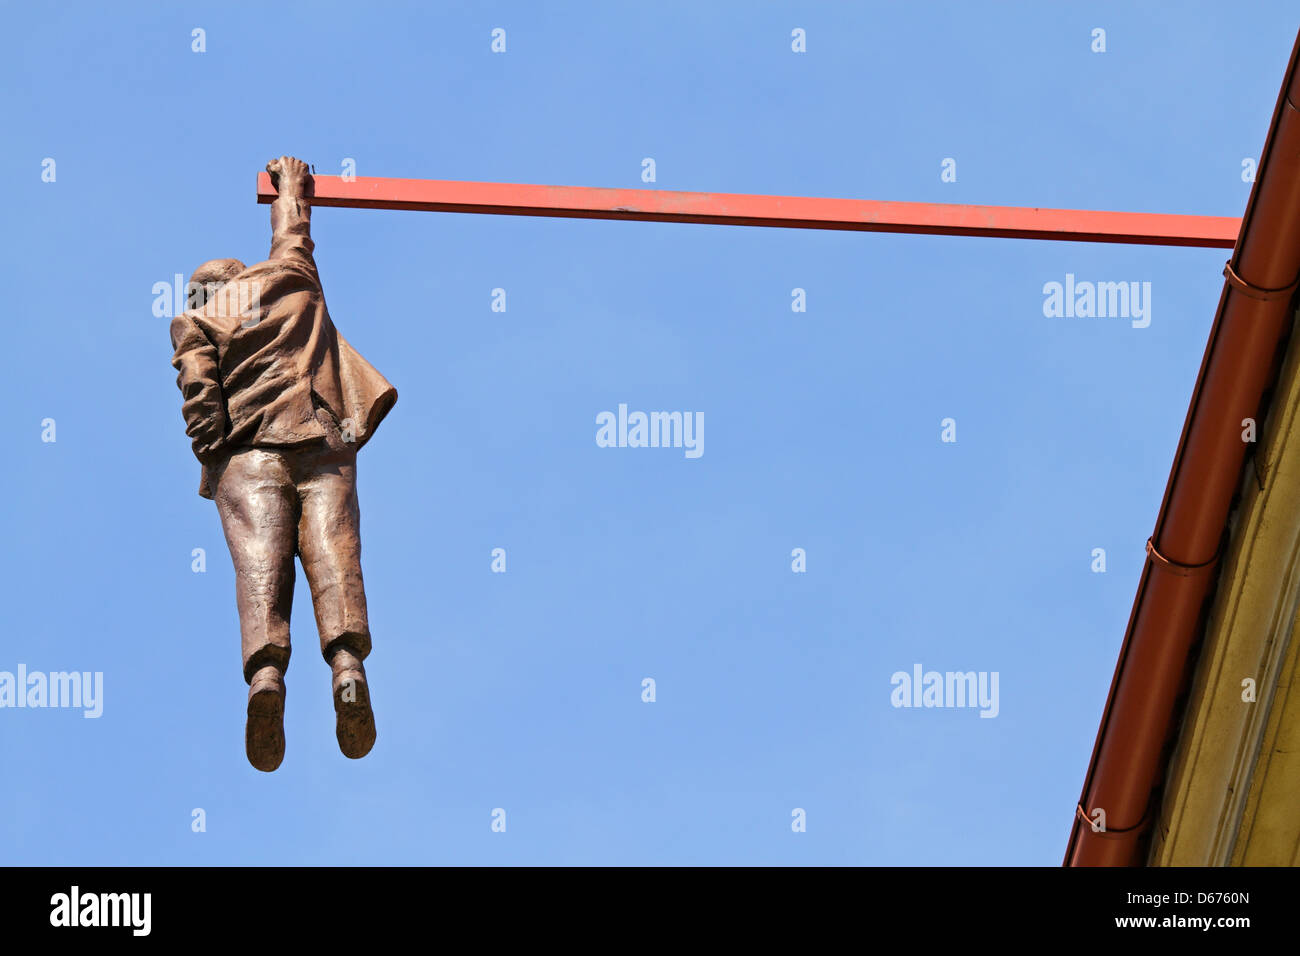 Statue of man hanging out by David Cerny - Stock Image